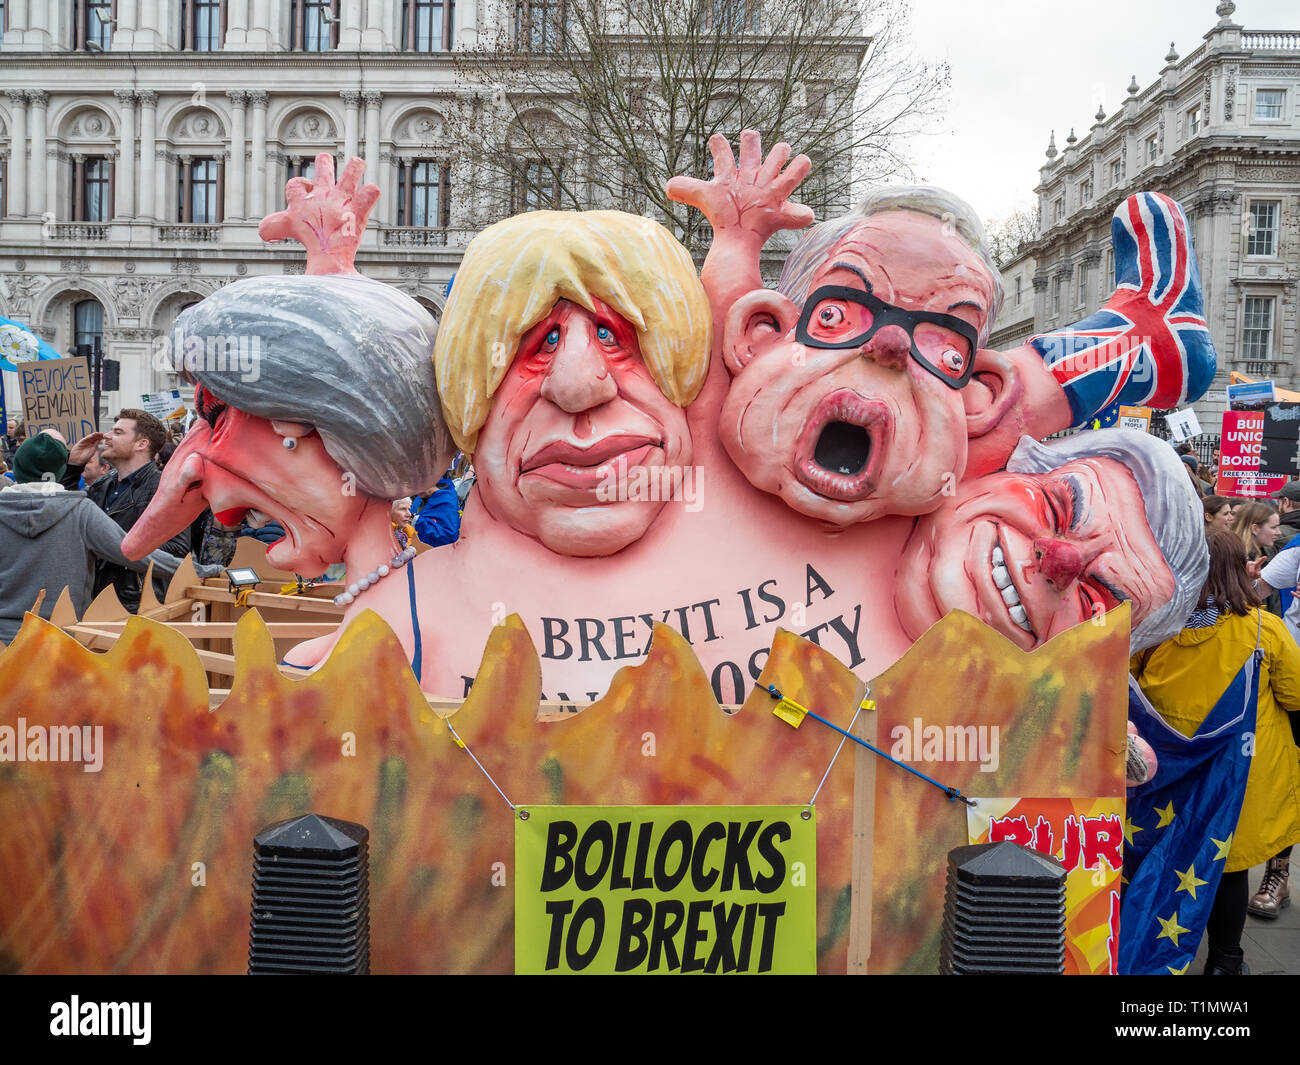 The Brexit Monstrosity float by Jacques Tilly on the People's Vote March, 23 March 2019, Whitehall, London, UK - Stock Image